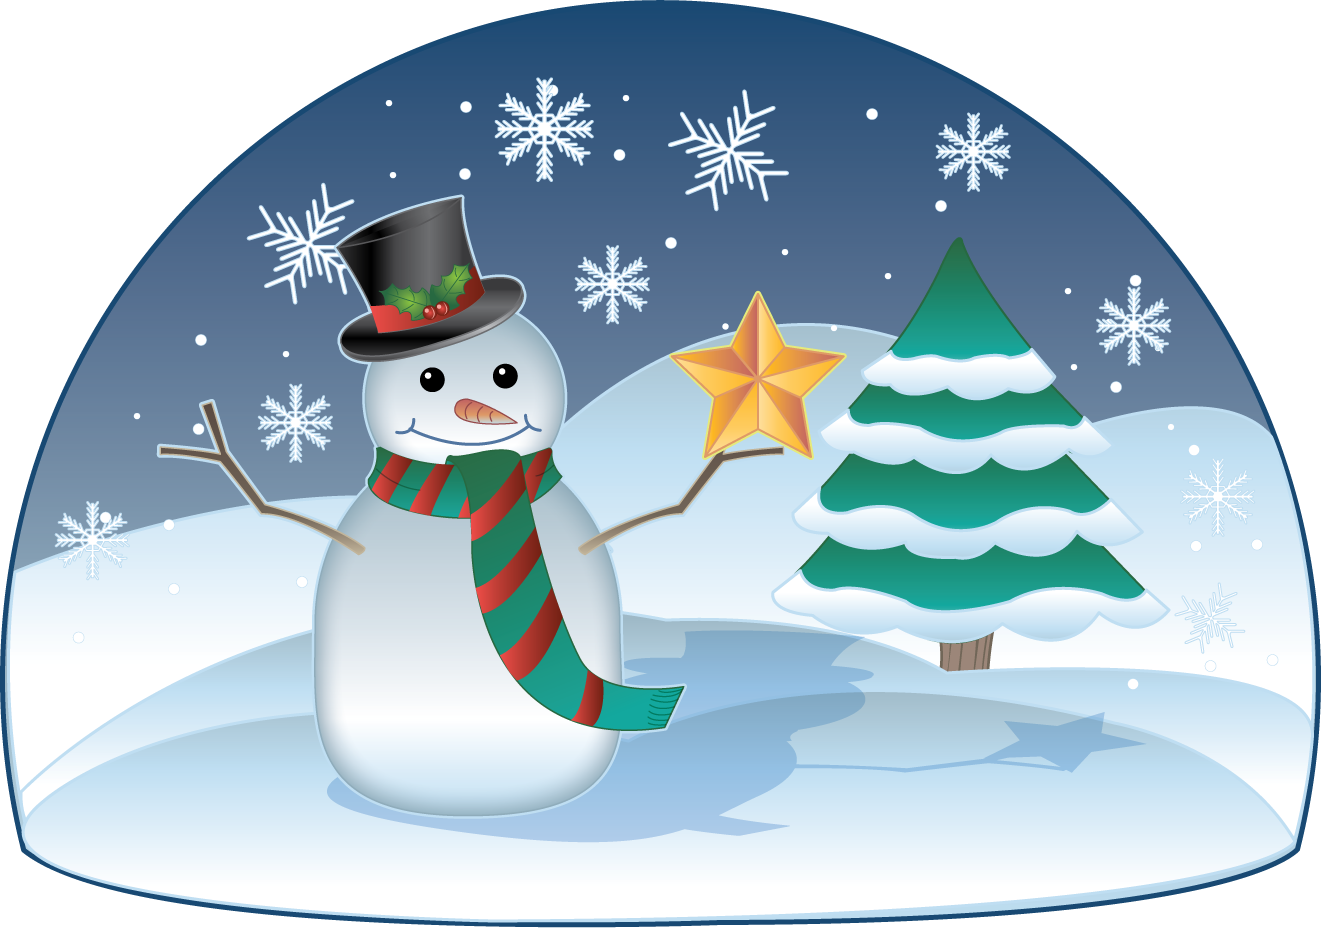 Clip Art Winter Scene Clipart winter scene clipart kid free clip art holiday christmas snowman in winter